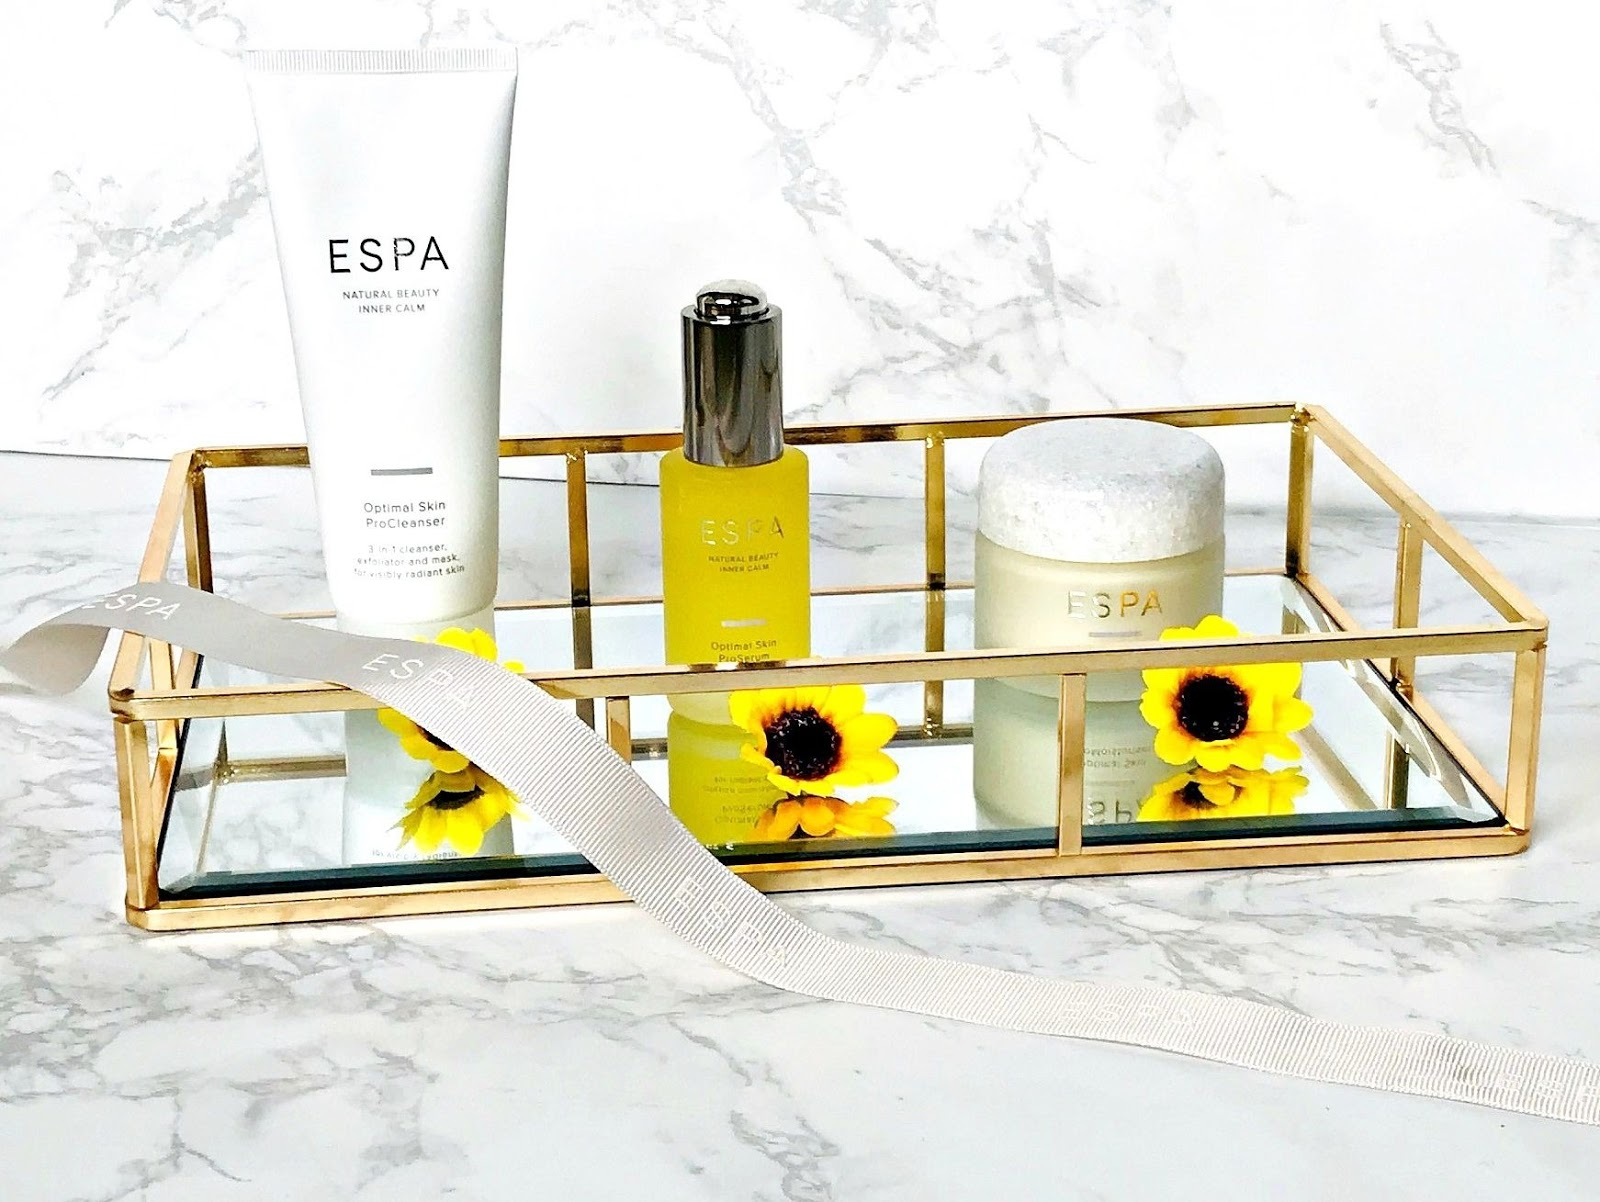 ESPA, ESPA Optimal Skin Pro Cleanser, ESPA Skin Pro Serum, ESPA Optimal Skin Pro Moisturiser, ESPA Discover The Route To Radiance #RoutetoRadiance